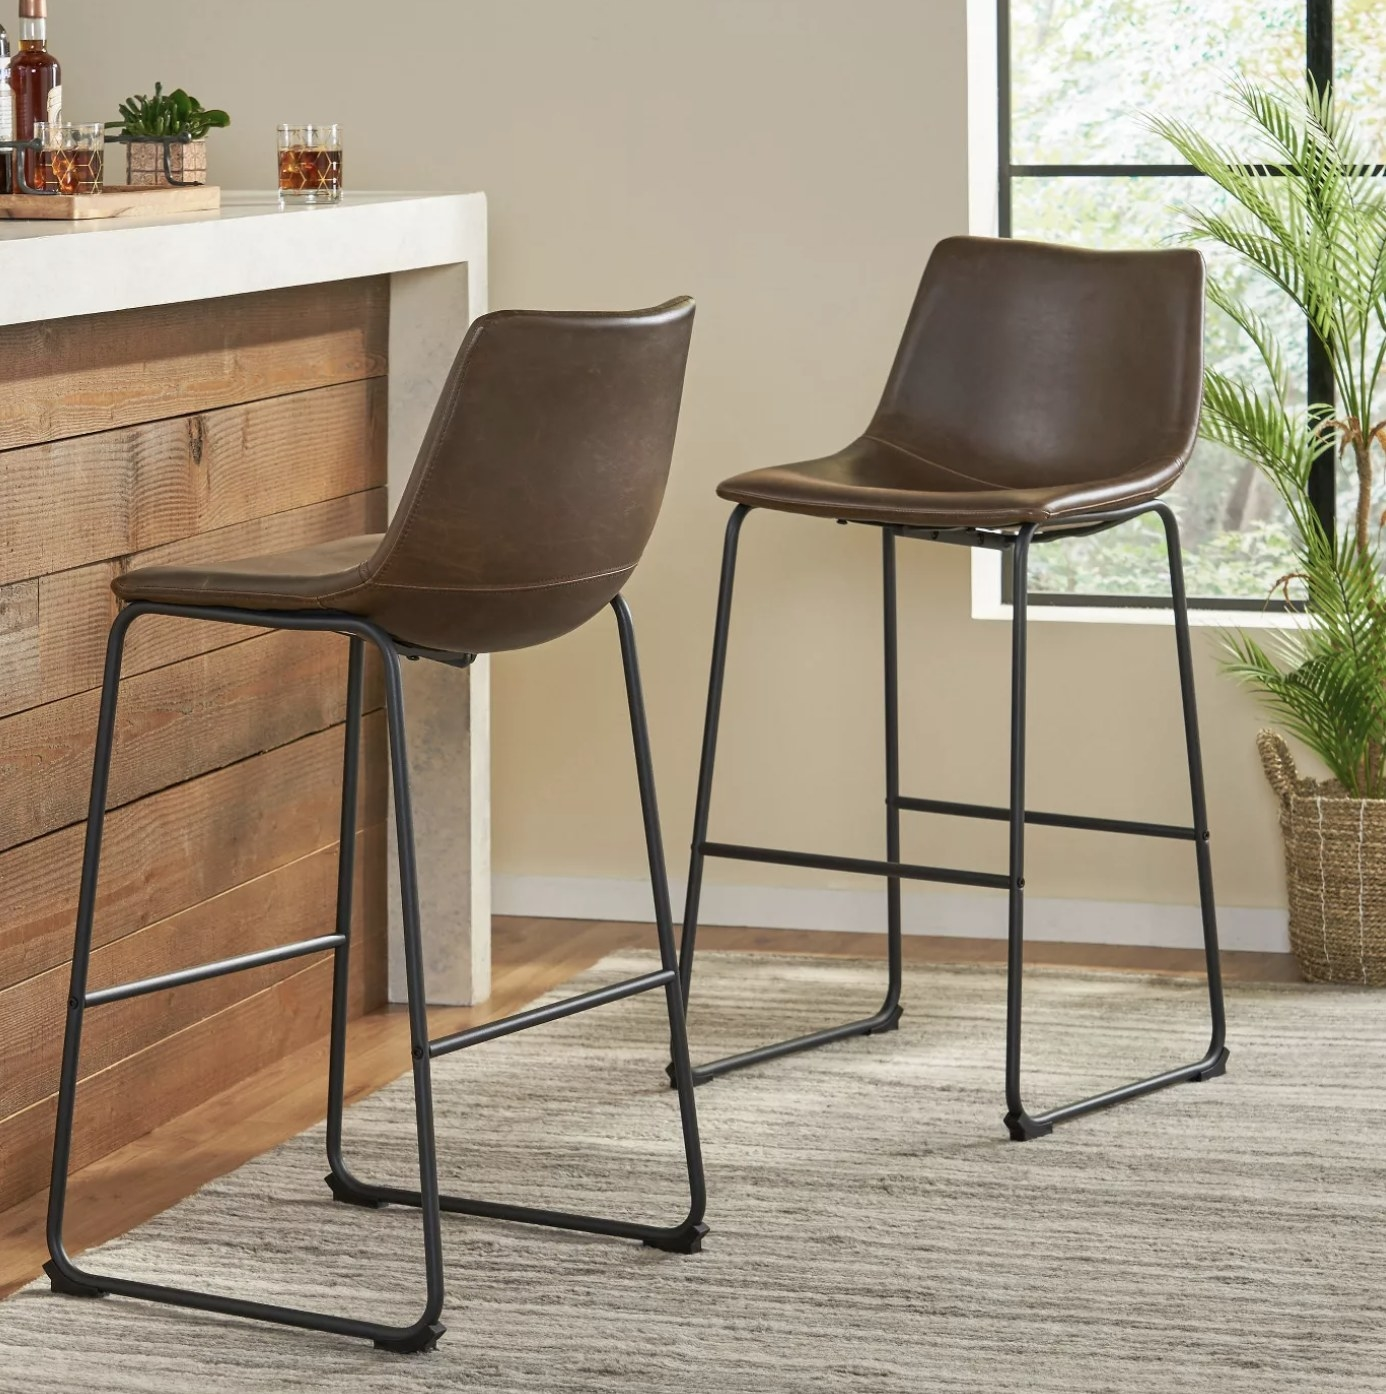 A set of two brown faux leather bar stools